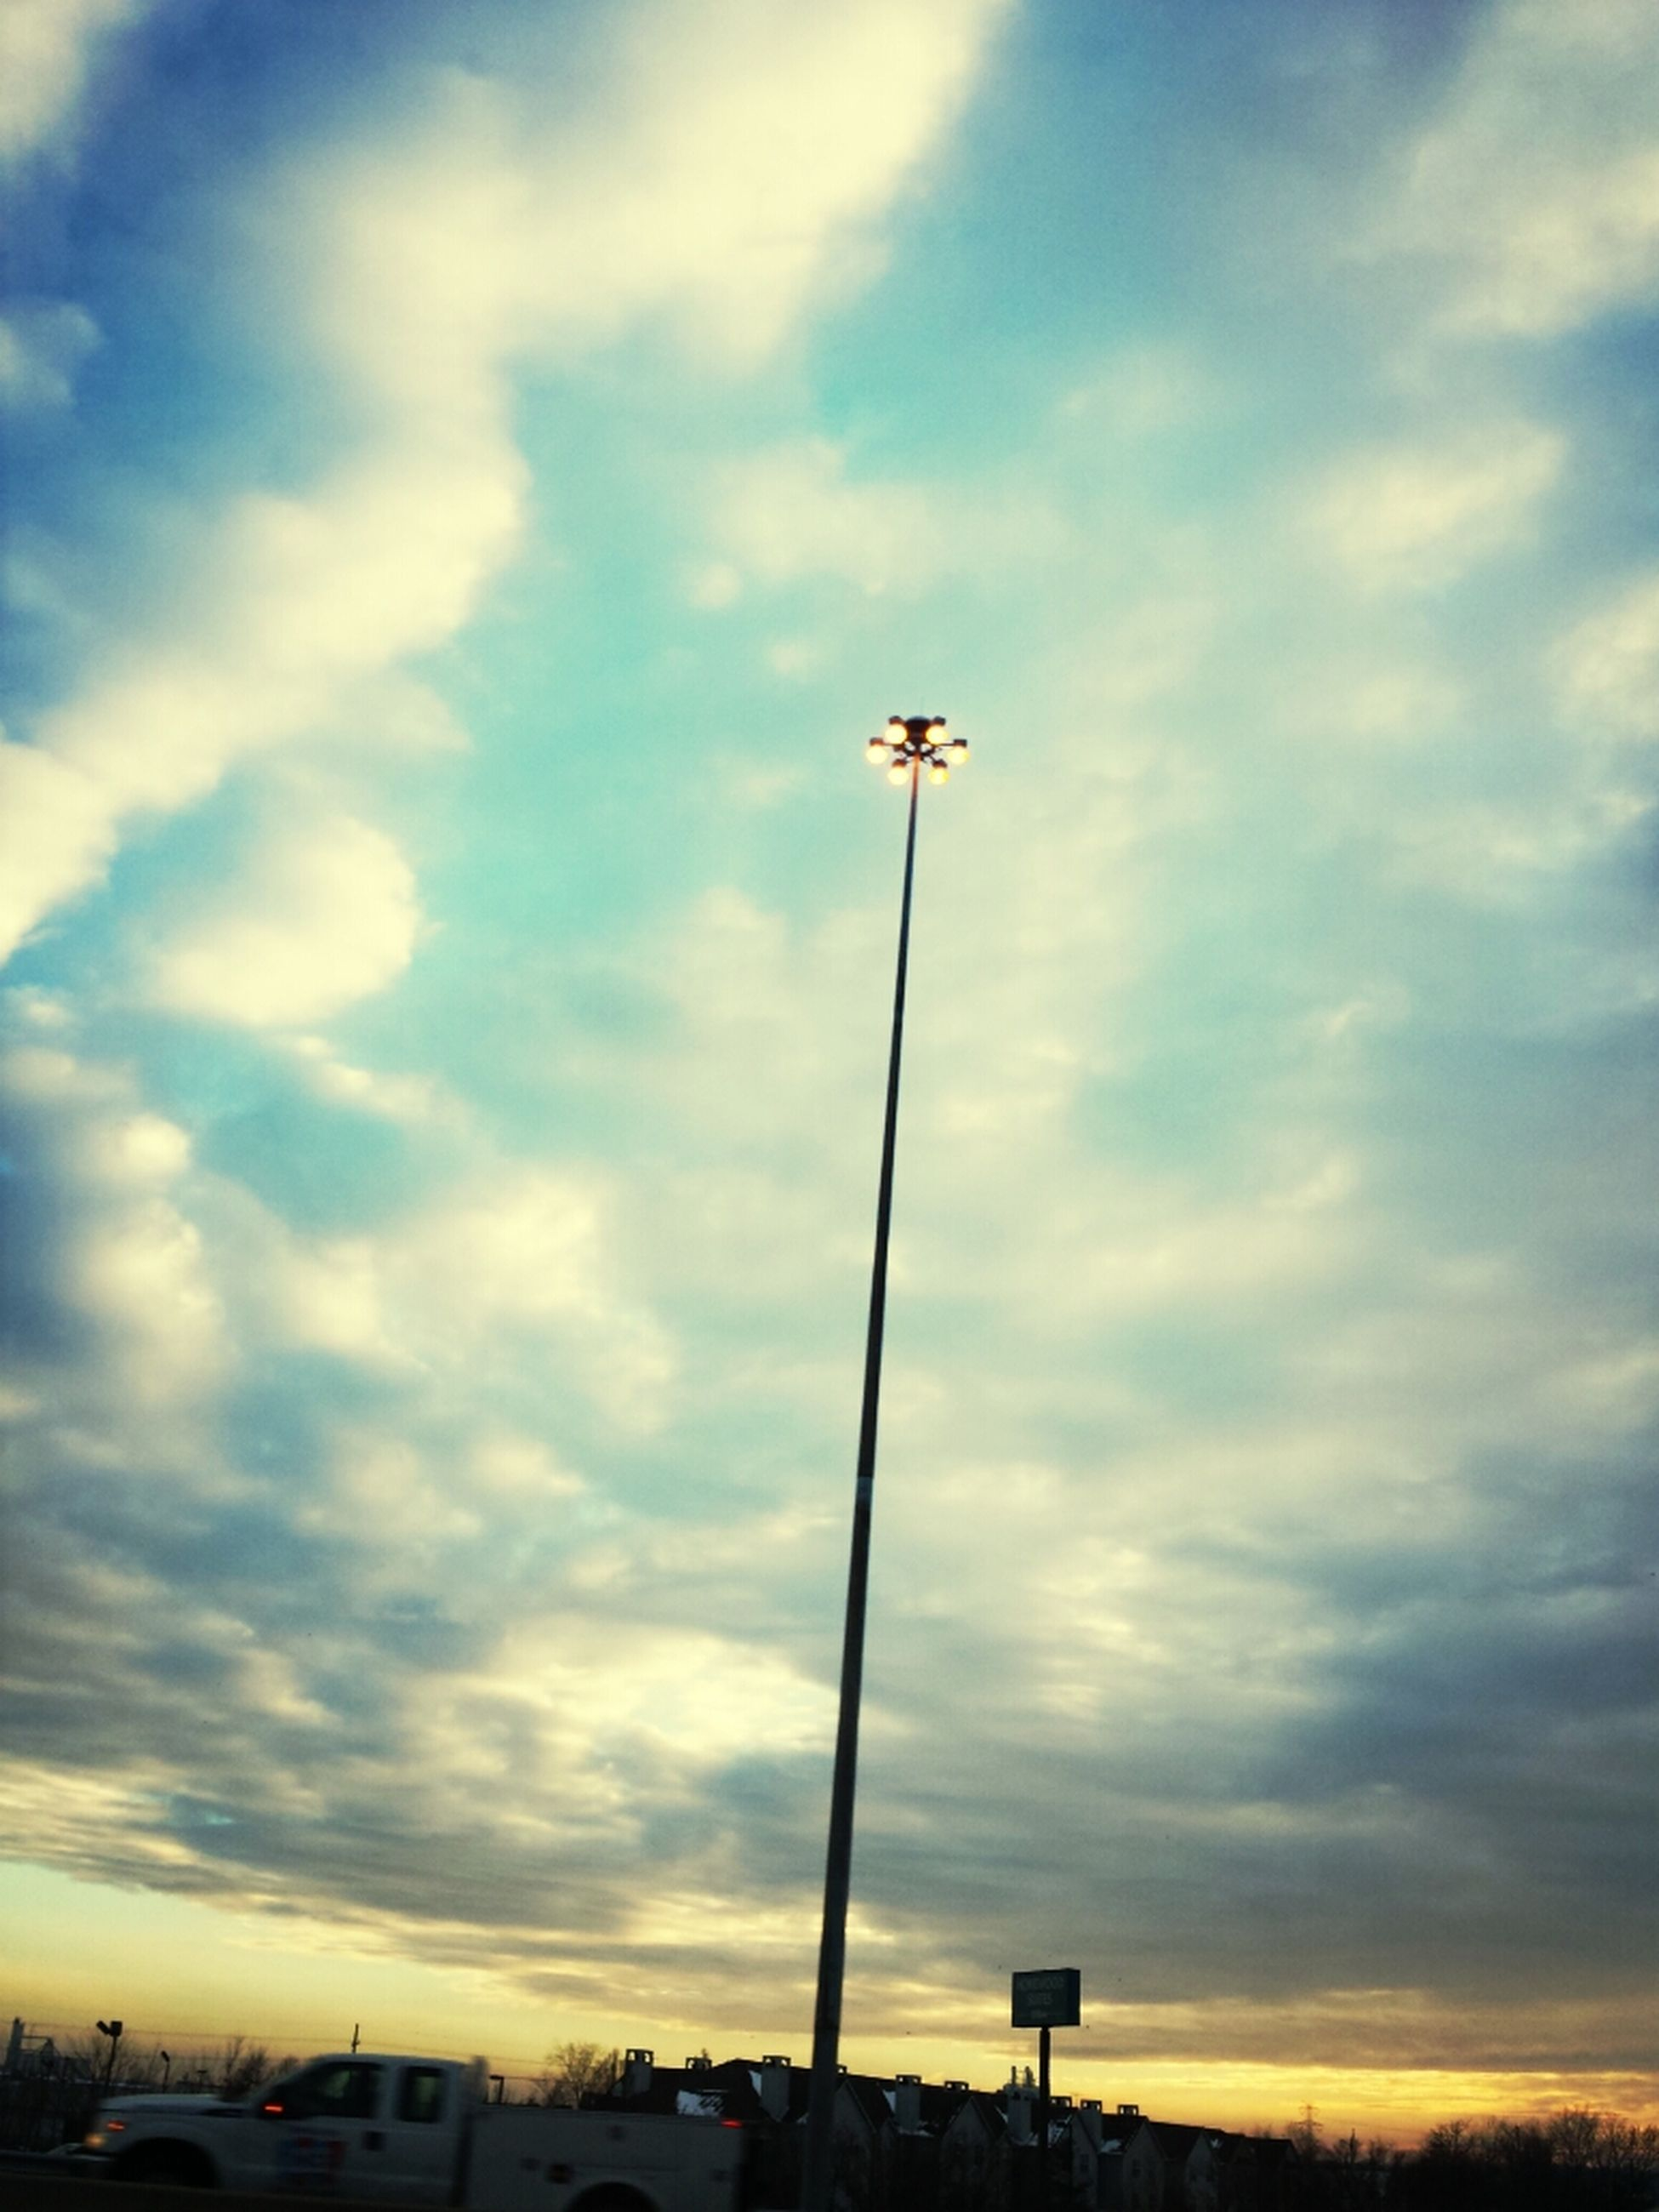 street light, sky, cloud - sky, cloudy, low angle view, transportation, lighting equipment, car, cloud, mode of transport, land vehicle, street, sunset, weather, road, pole, outdoors, silhouette, no people, overcast